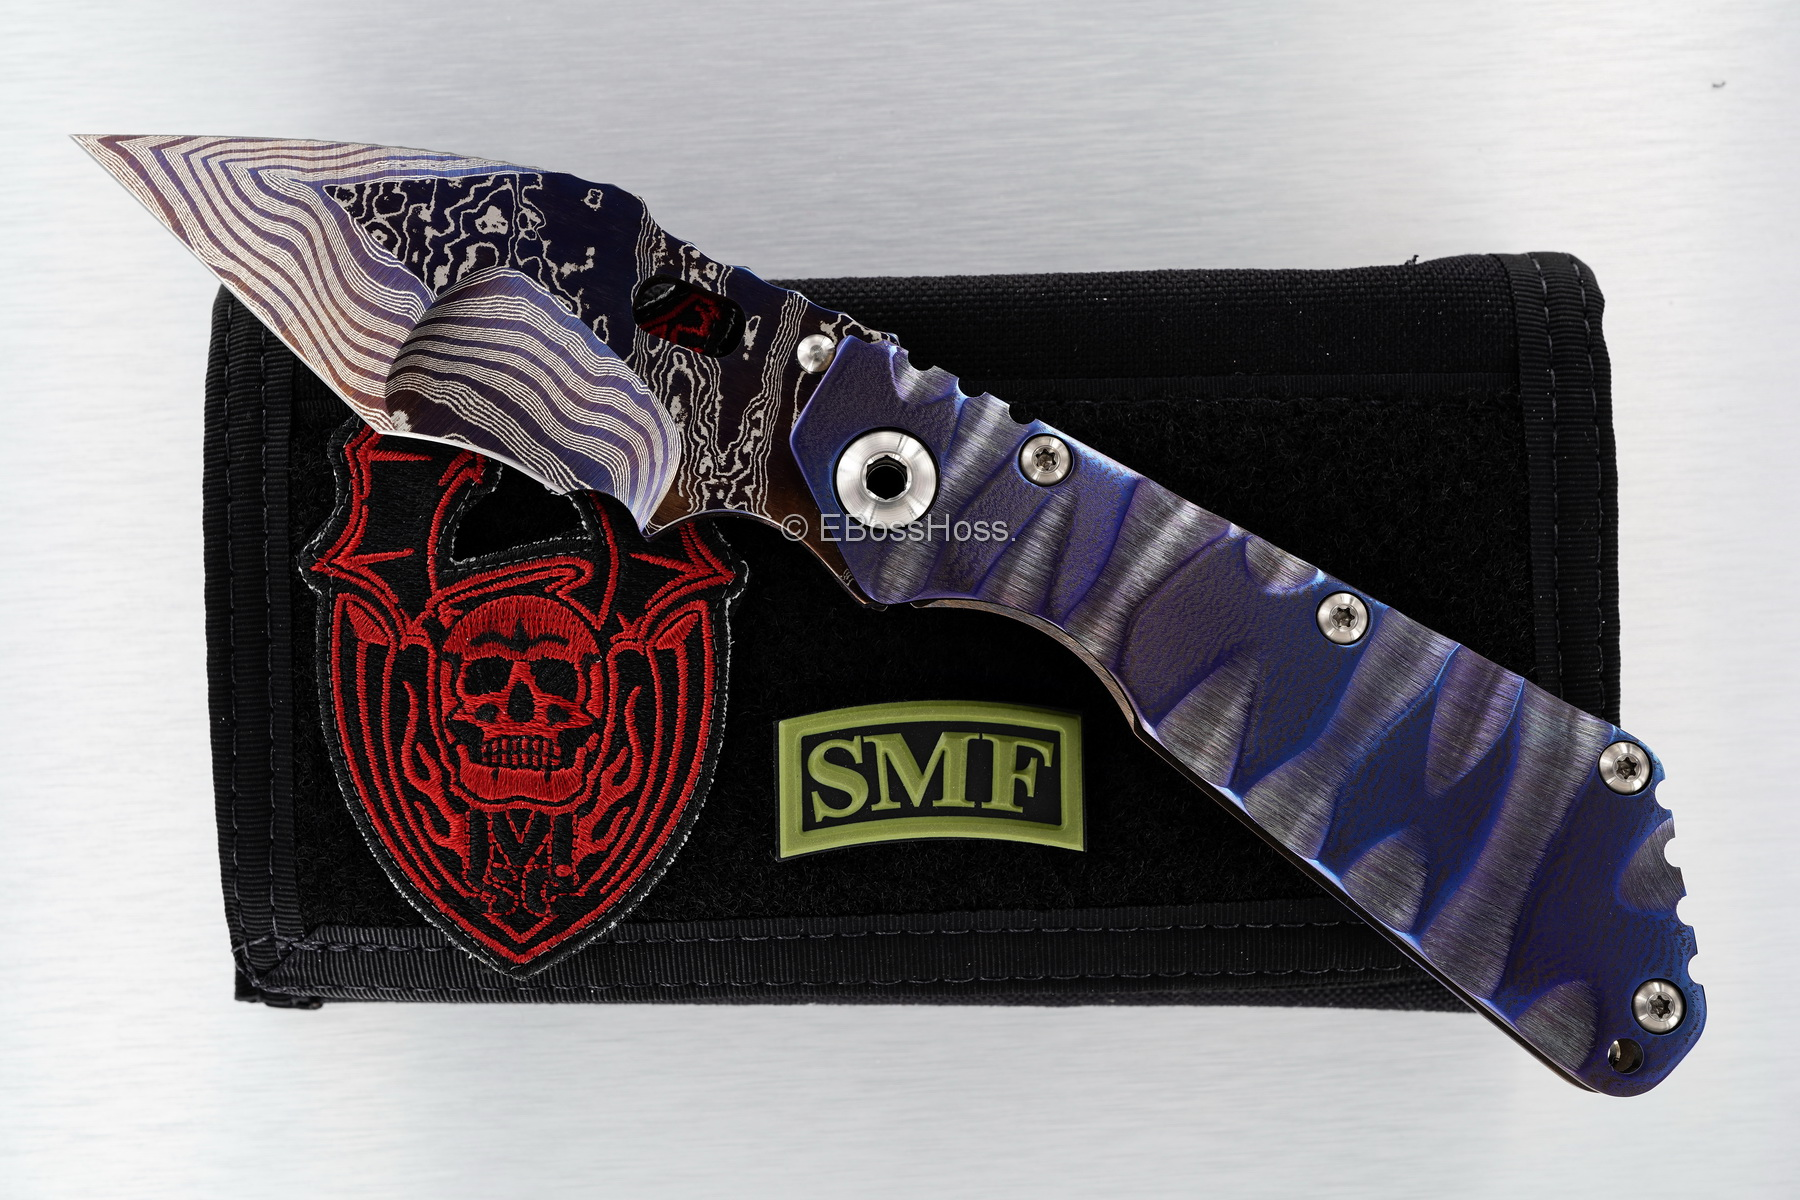 Mick Strider Custom (MSC) Cobalt-Damascus Tanto SMF - Nightmare Dragon-grind